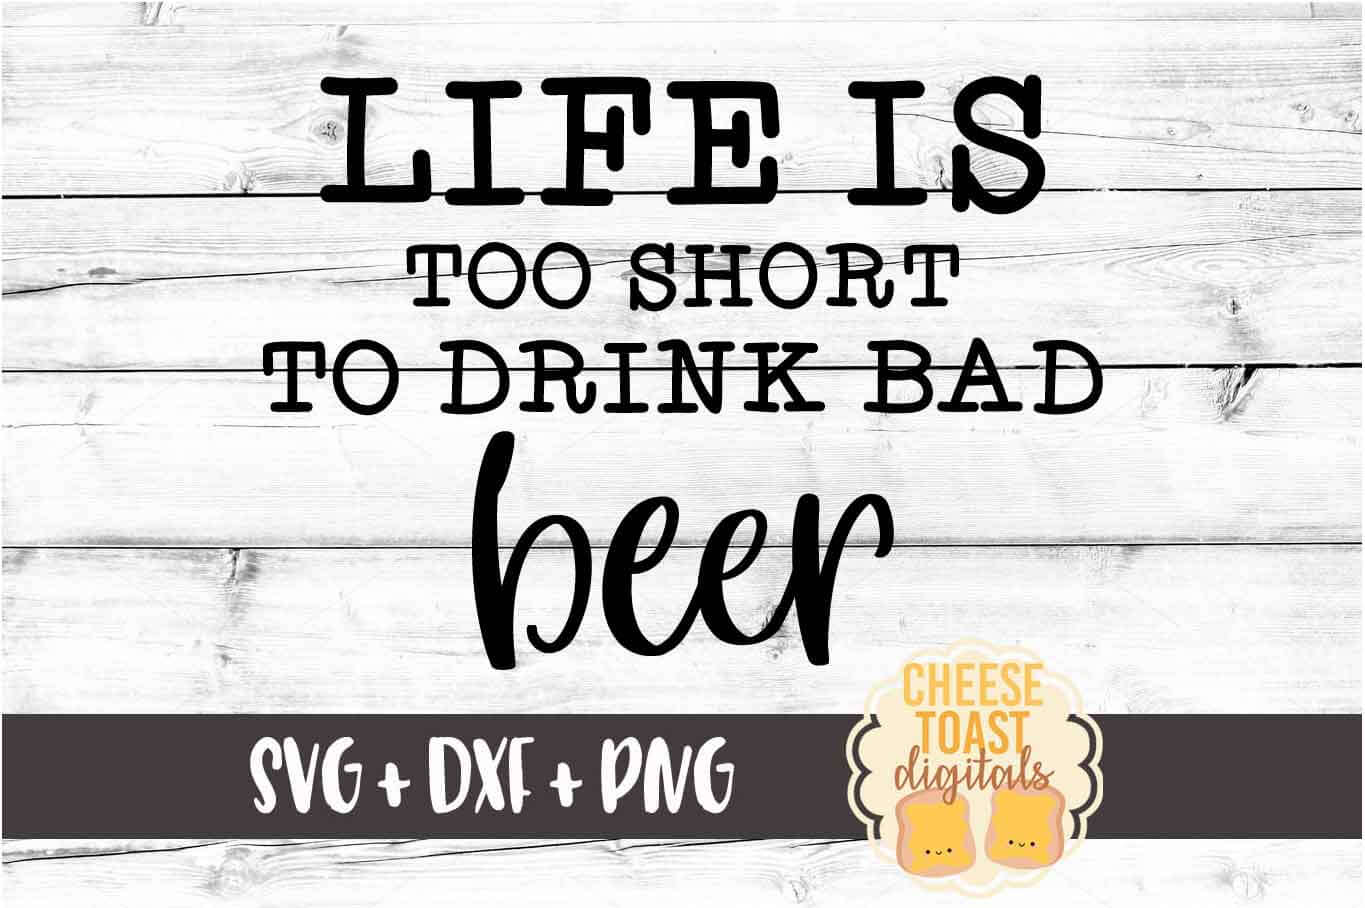 Life Is Too Short To Drink Bad Beer - Beer SVG PNG DXF Files example image 2